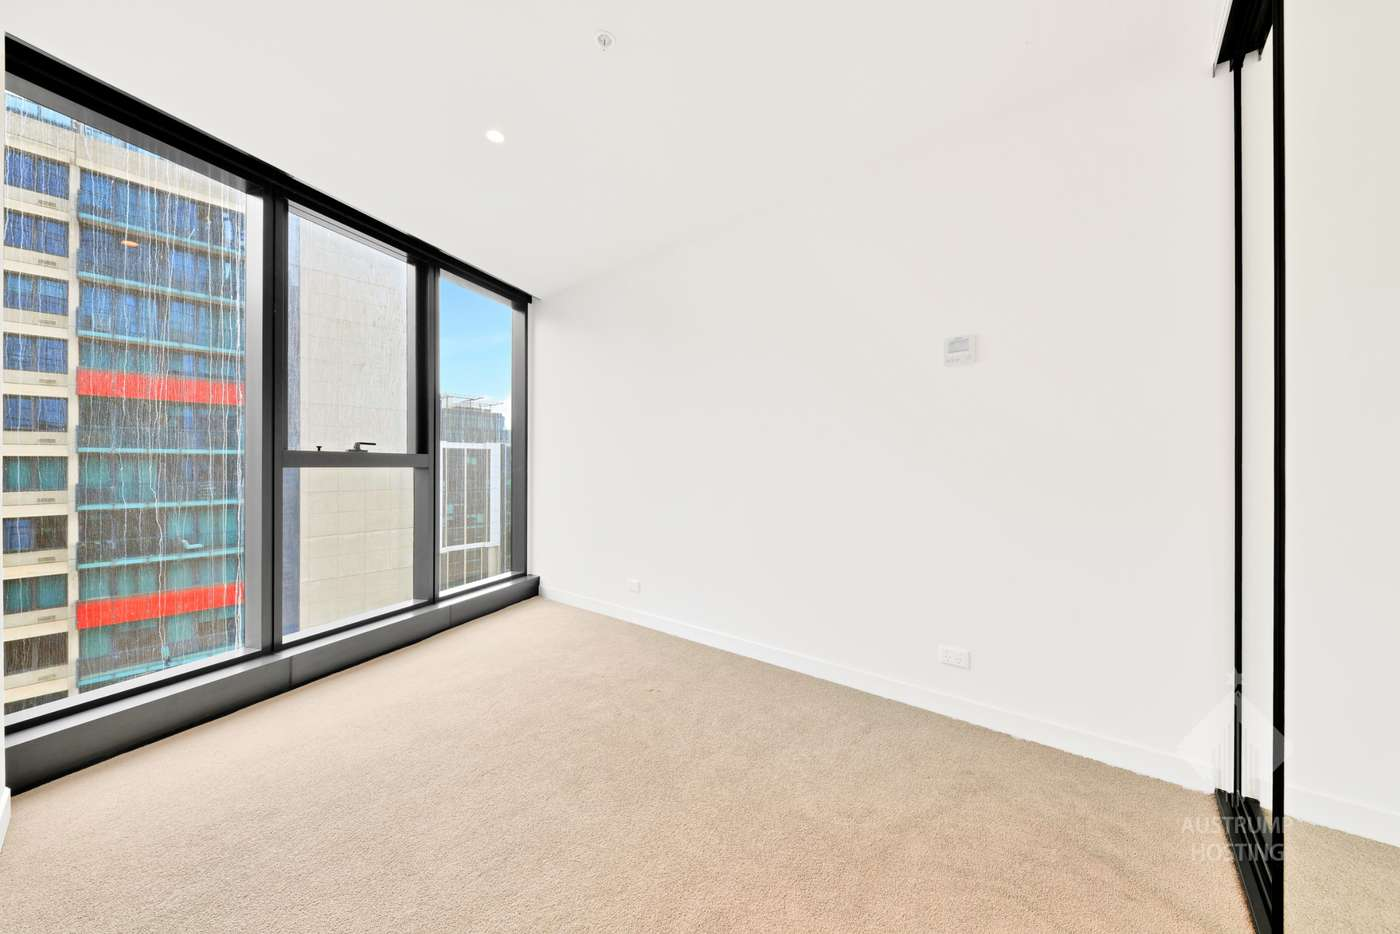 Sixth view of Homely apartment listing, 2013/350 Queen Street, Melbourne VIC 3000